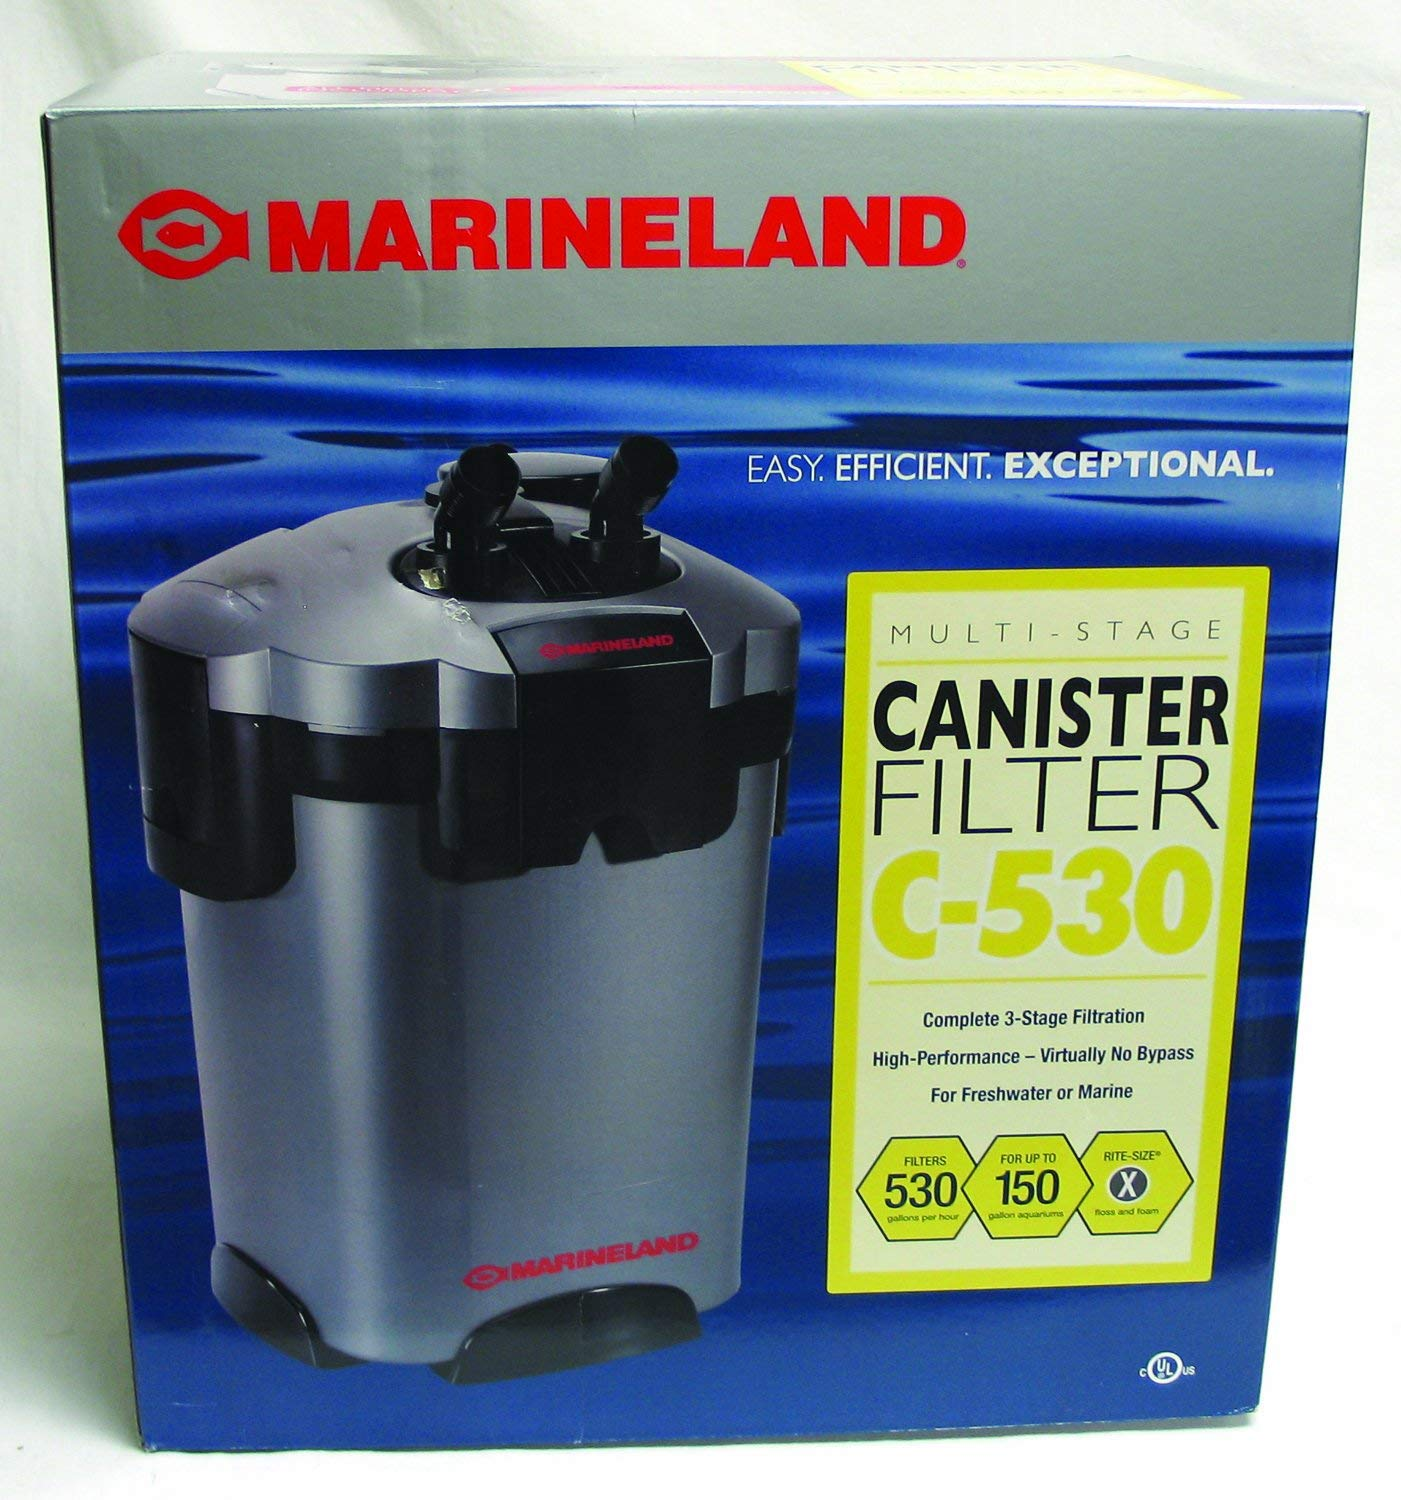 Best Aquarium Filters for Large Tanks 8. MarineLand Multi-Stage Canister Filter for Aquariums, C-Series